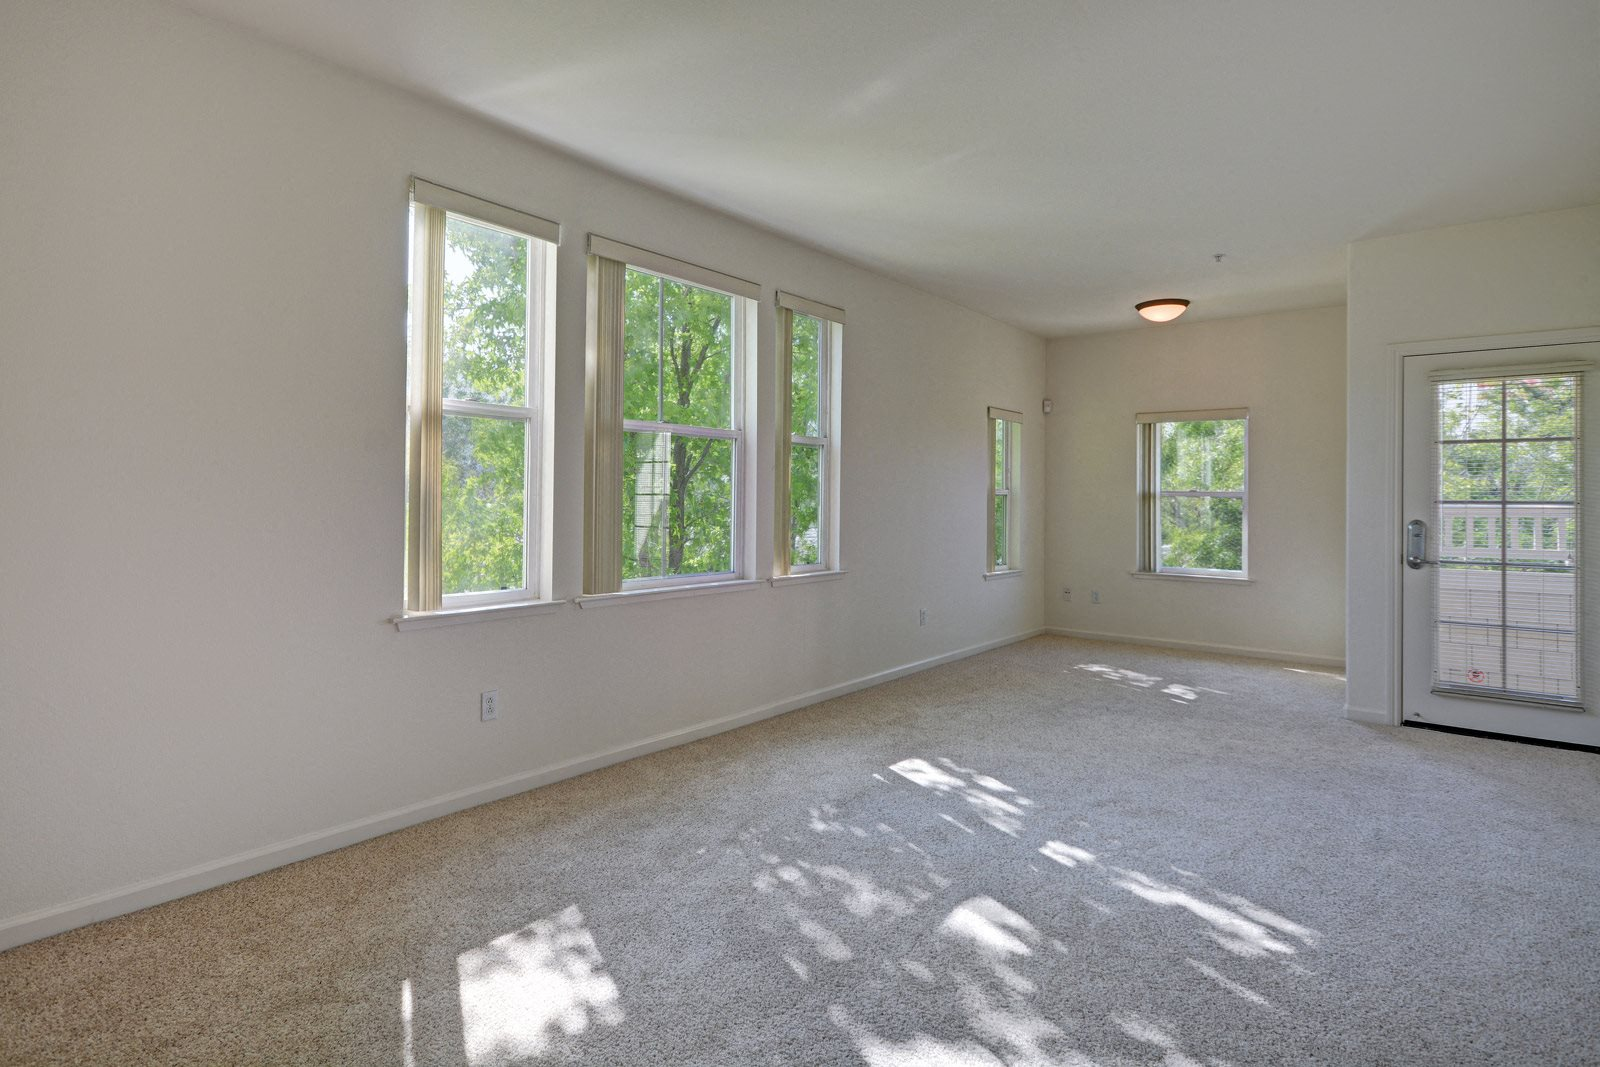 Bright Windows Letting in Natural Light at The Kensington, Pleasanton, 94566